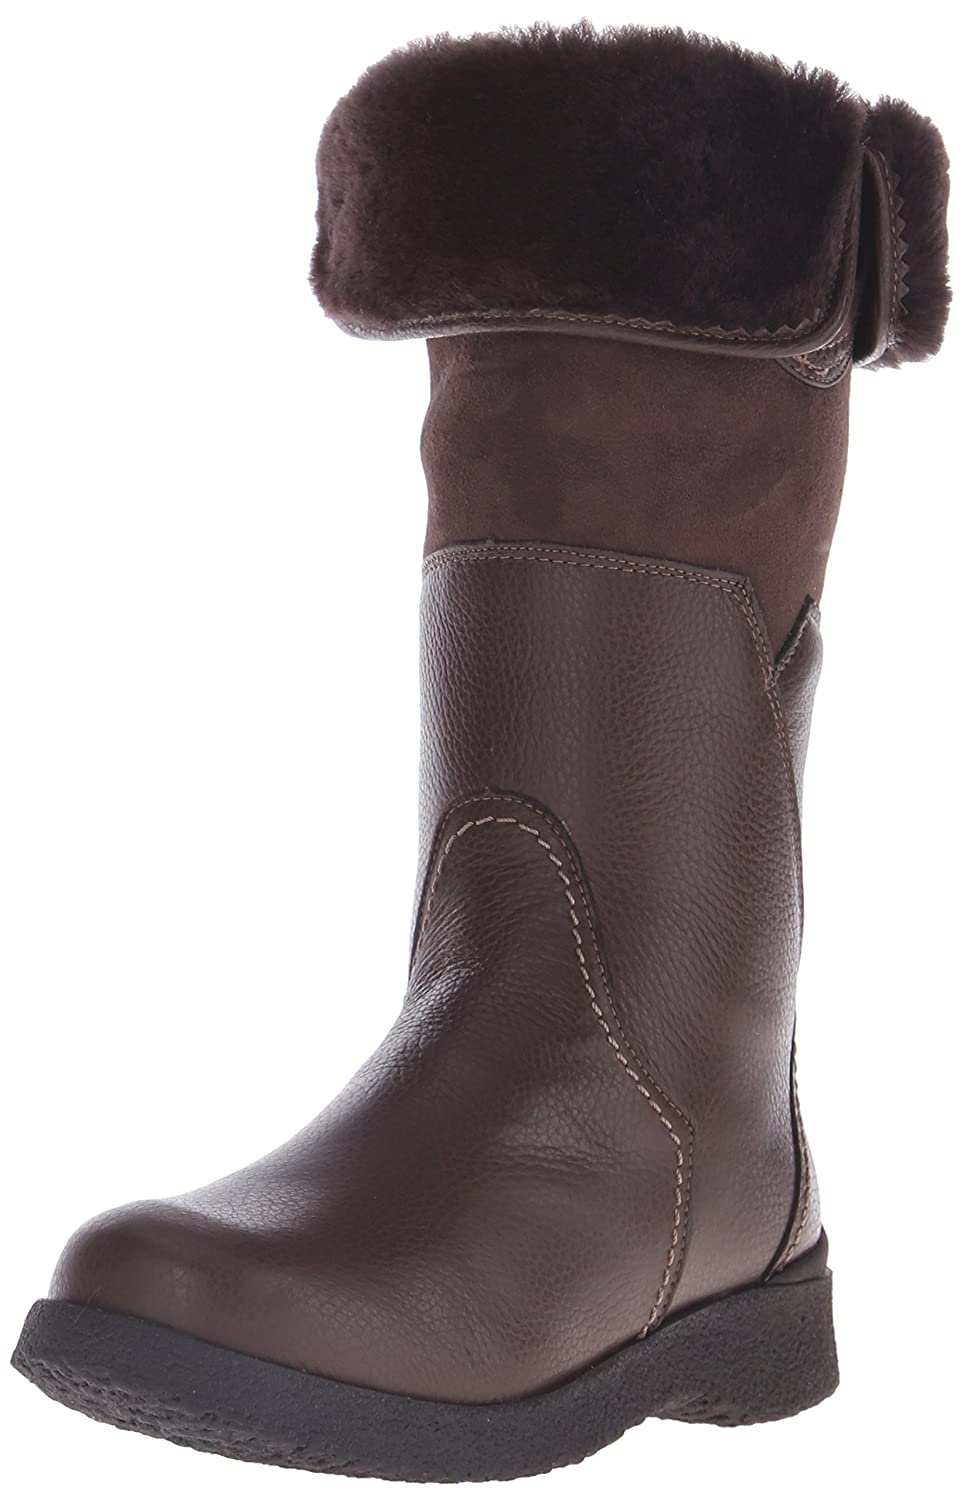 Pajar Women's Montana Boot B013GIIW2A 5.5 B(M) US|Brown Bison/Brown Dfs